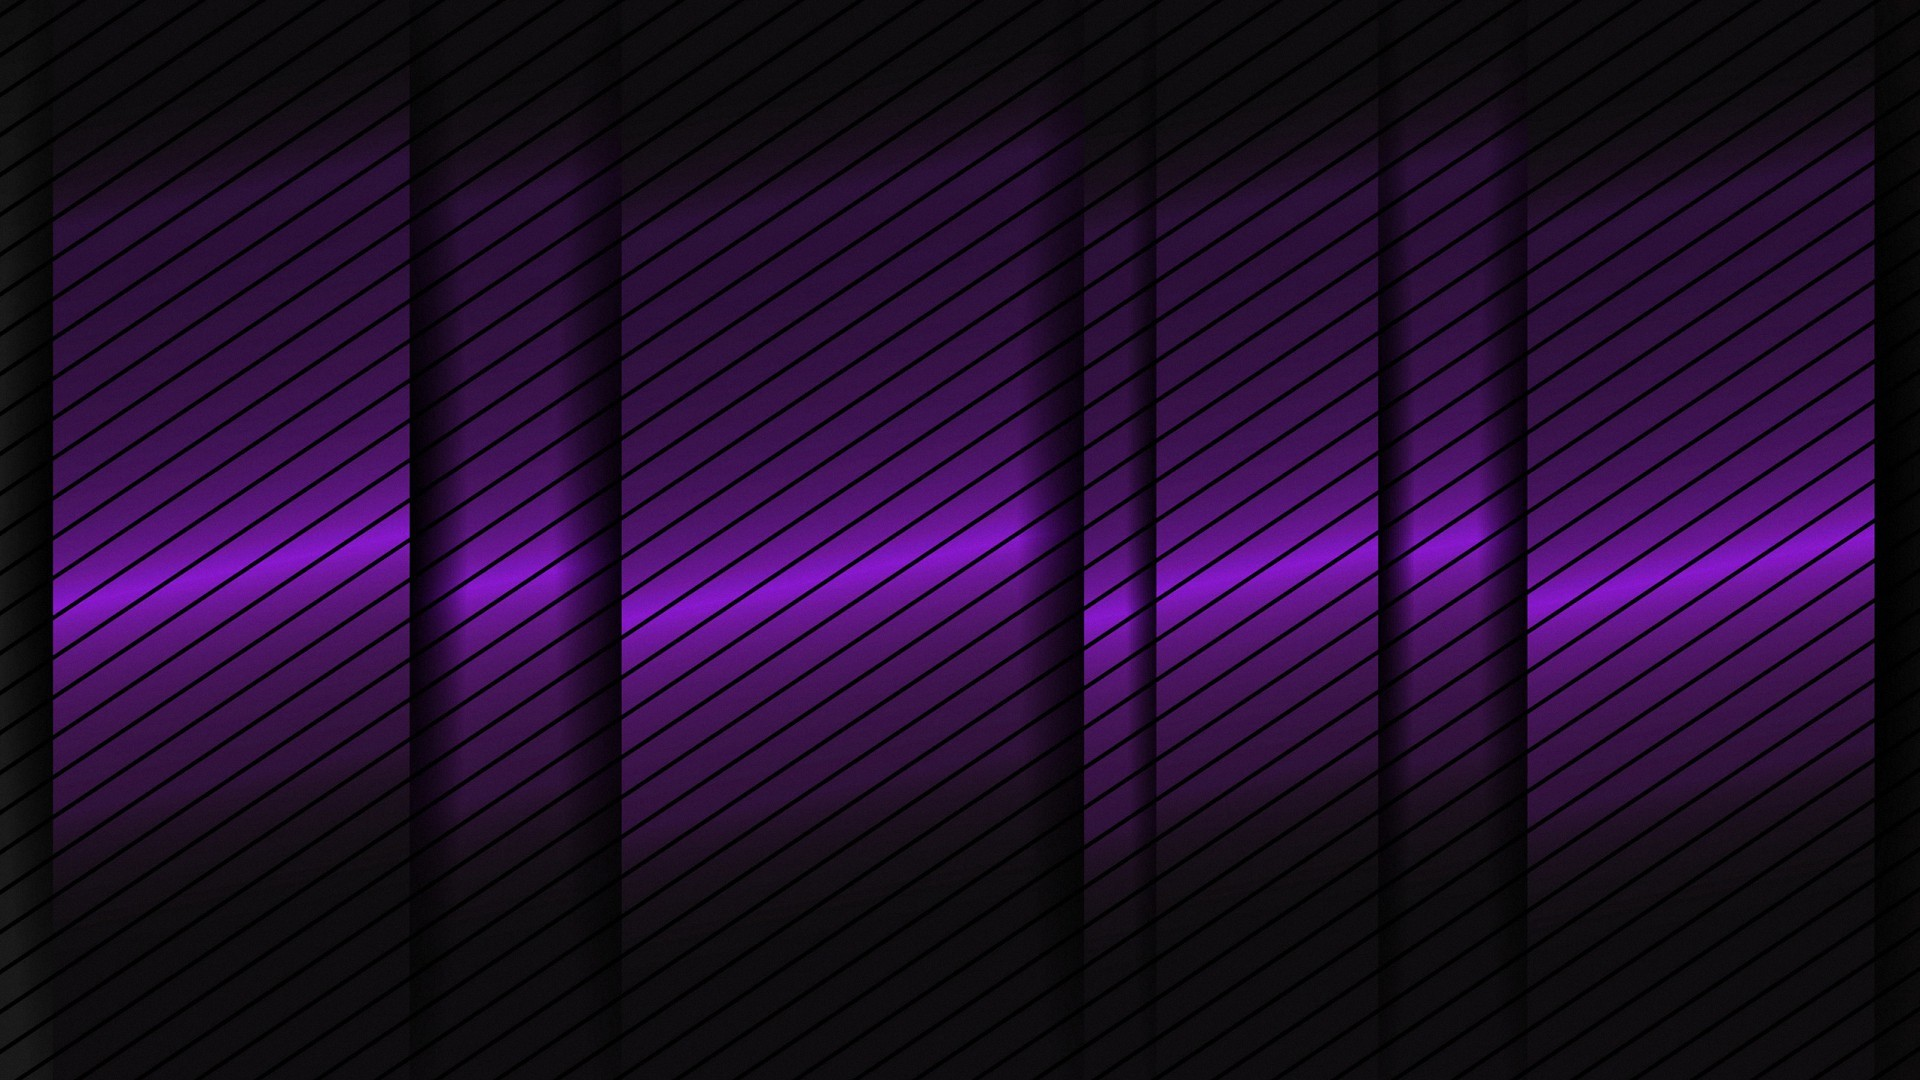 2560x1600 Preview Wallpaper Purple Dark Patterns Shadows